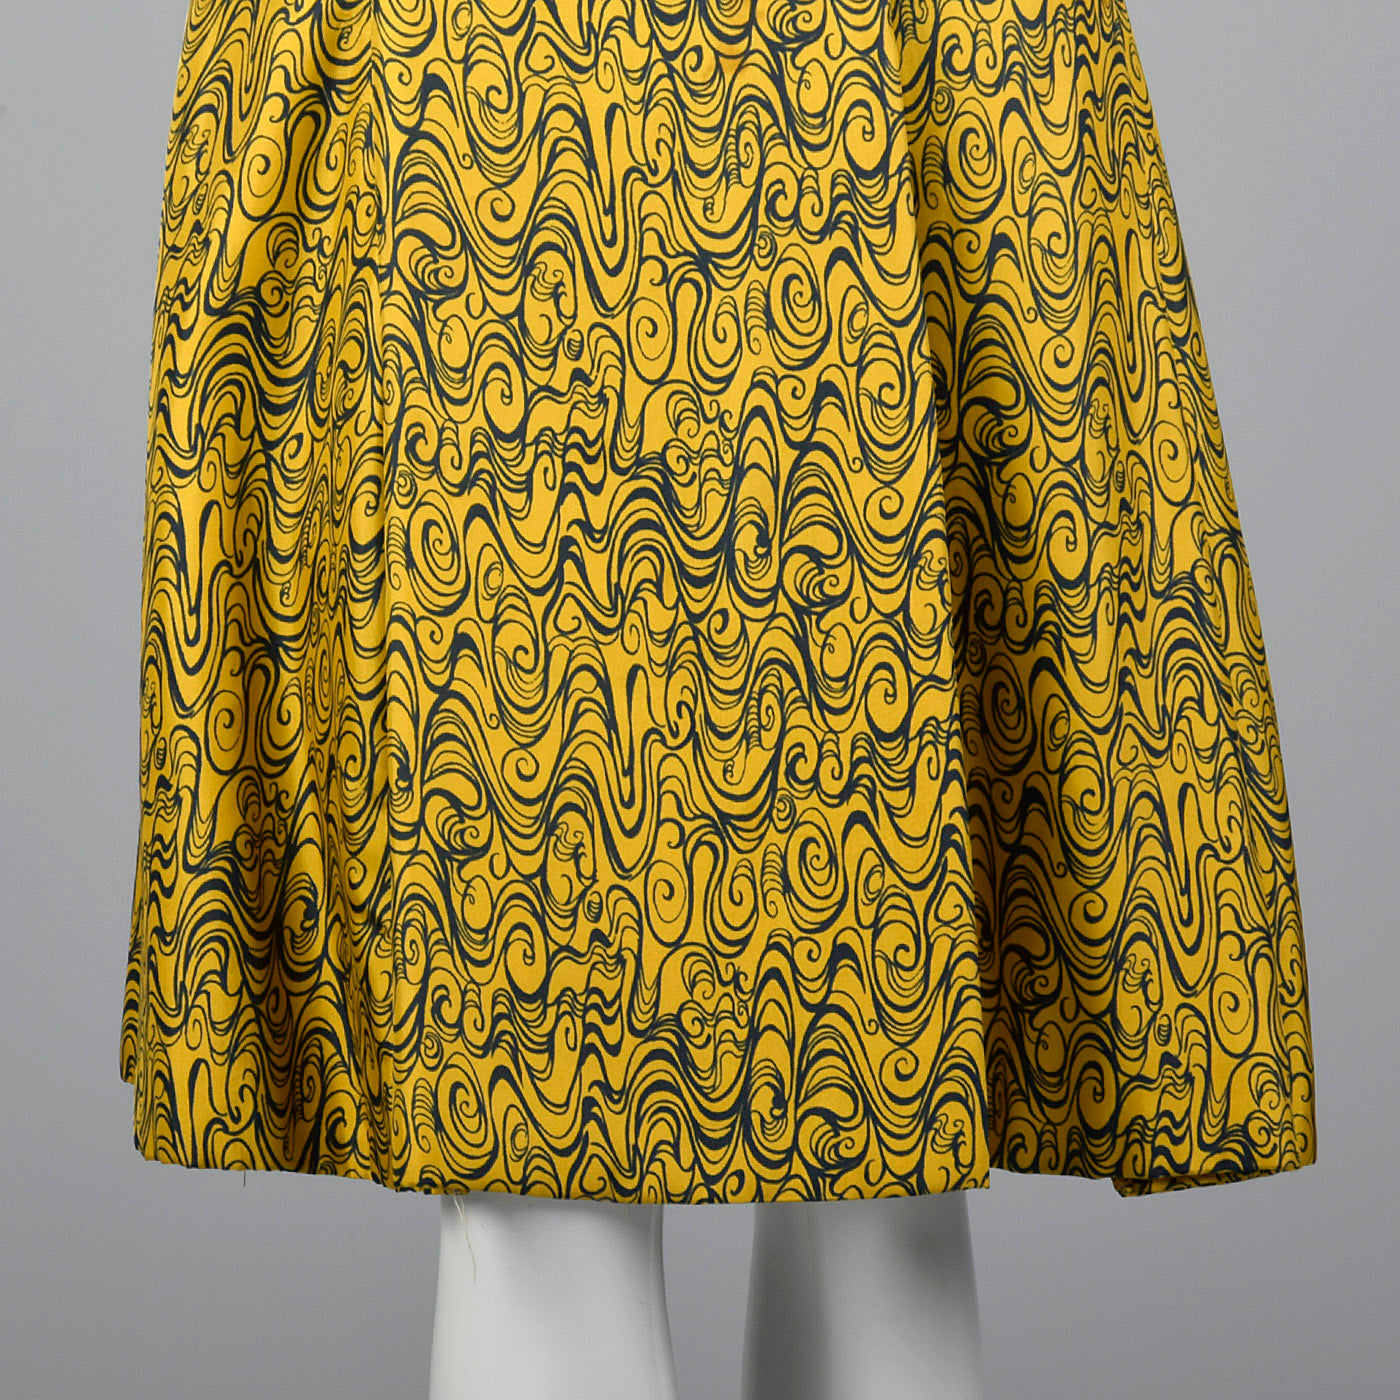 1960s Psychedelic Print Coat Dress